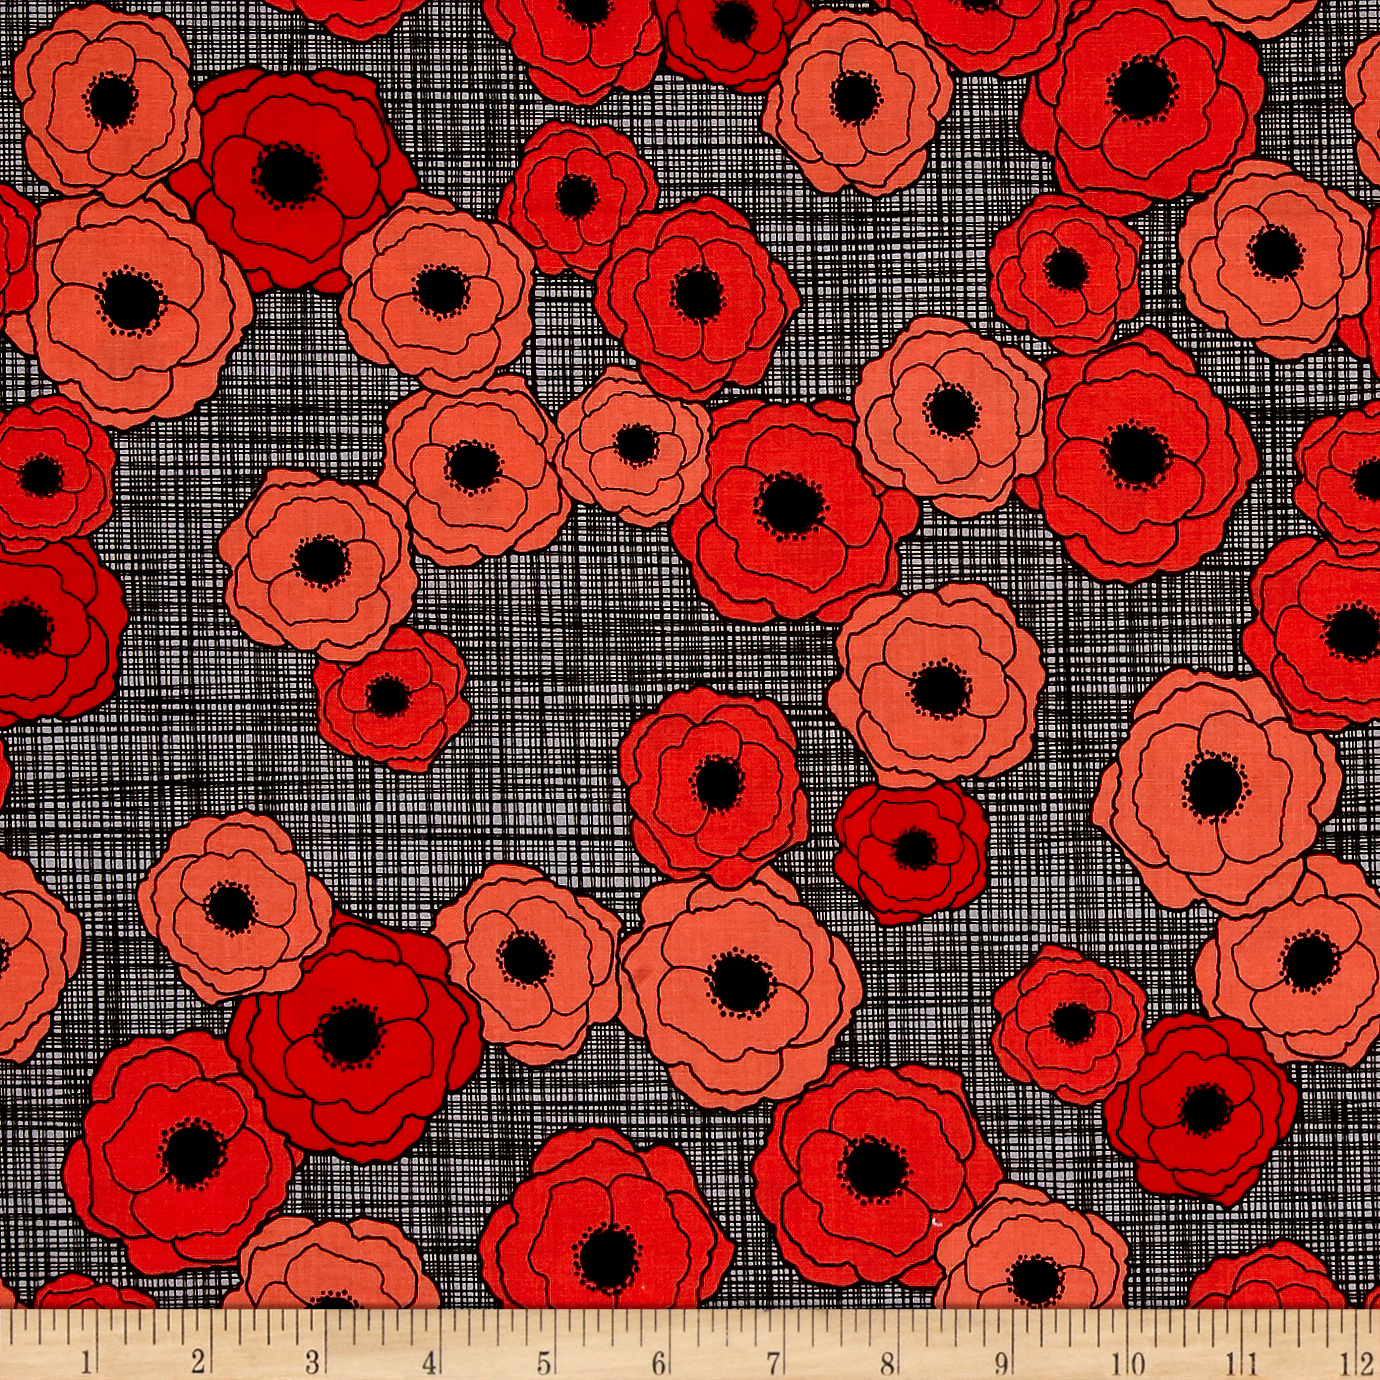 Poppies In Bloom Red Multi Poppies Red Fabric by E. E. Schenck in USA